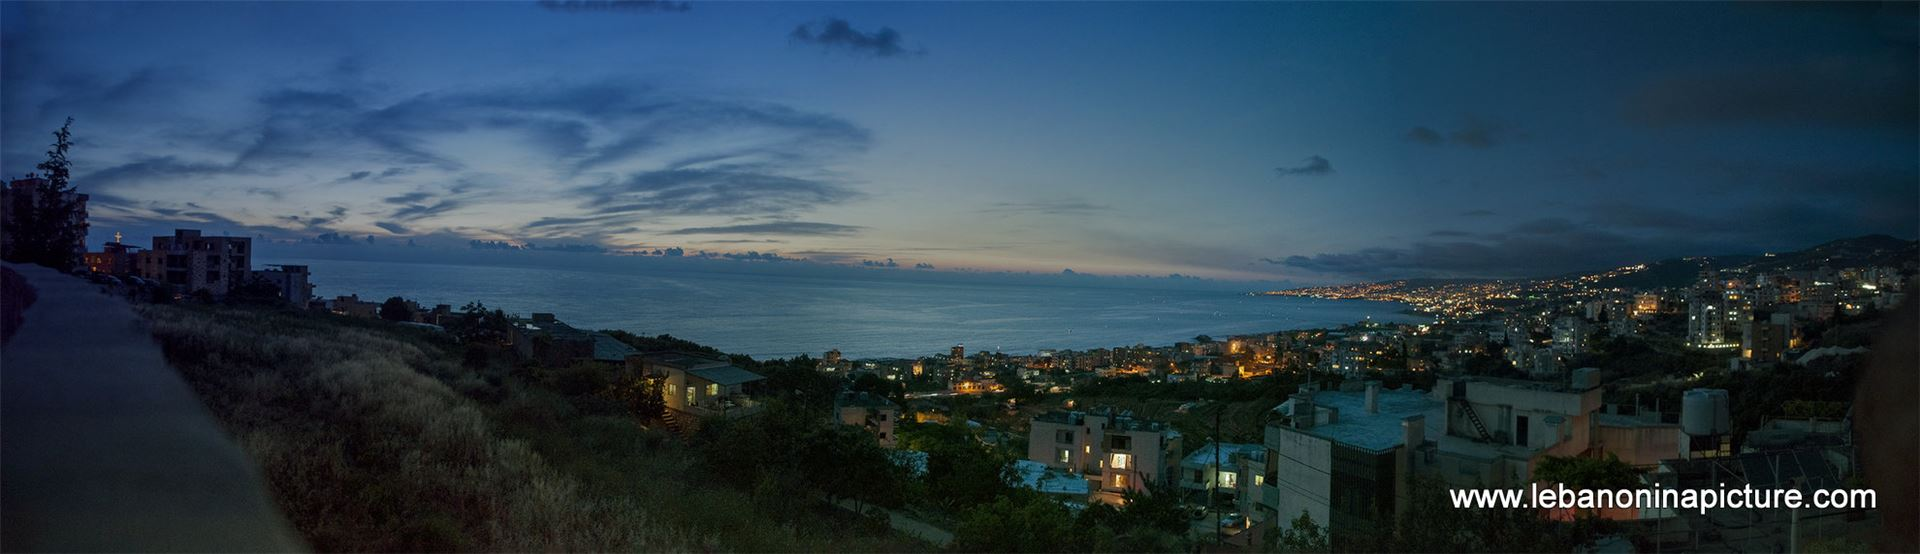 Panoramic View Right After the Sunset Showing the Mediterranean from Tabarja Coast Until Nahr Ibrahim (Safra, Lebanon)